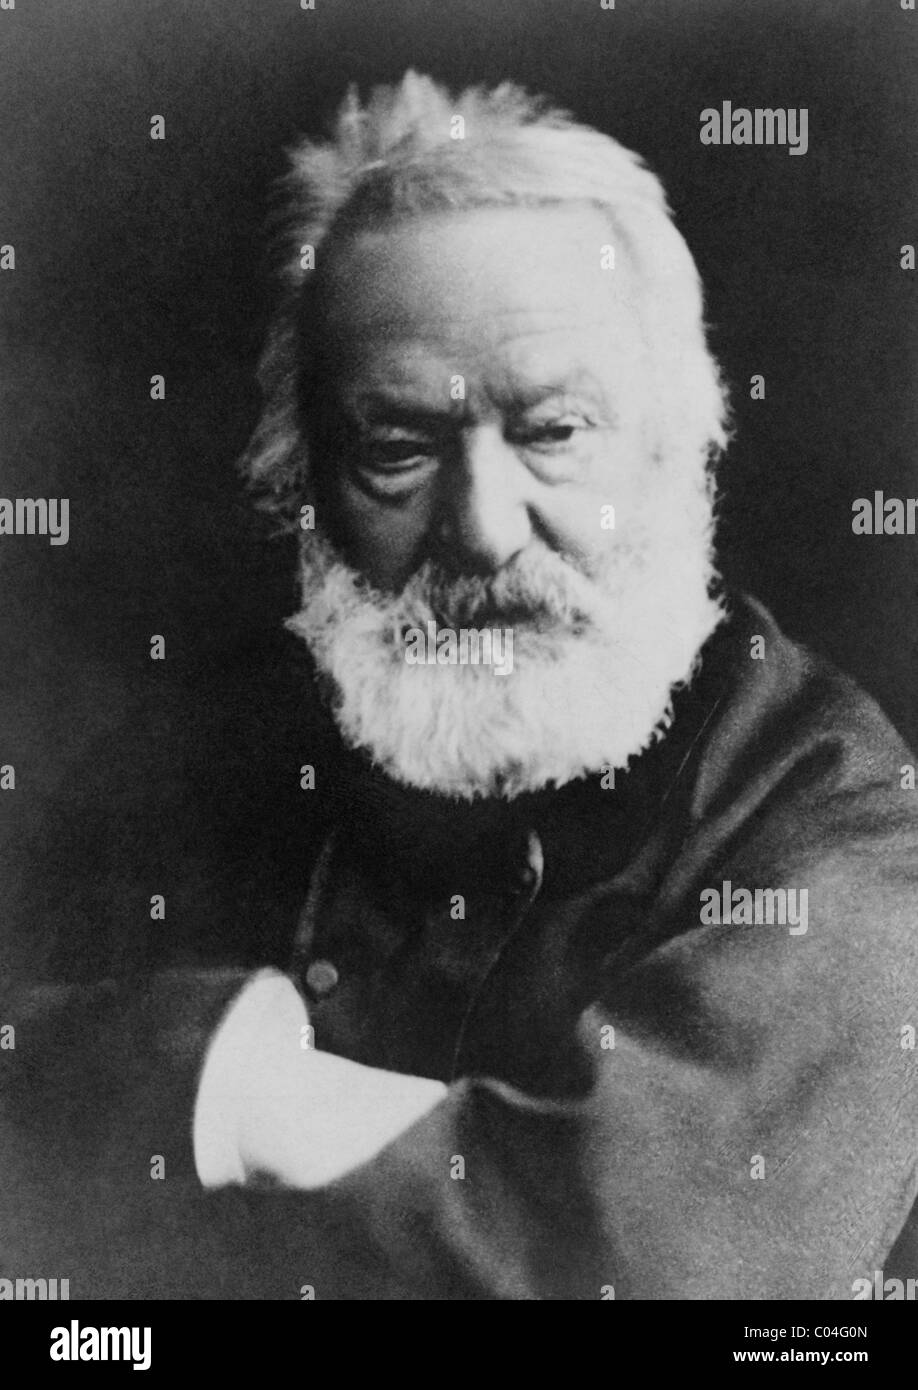 Portrait photo circa 1870s of French poet, playwright, novelist and artist Victor Hugo (1802 - 1885). - Stock Image